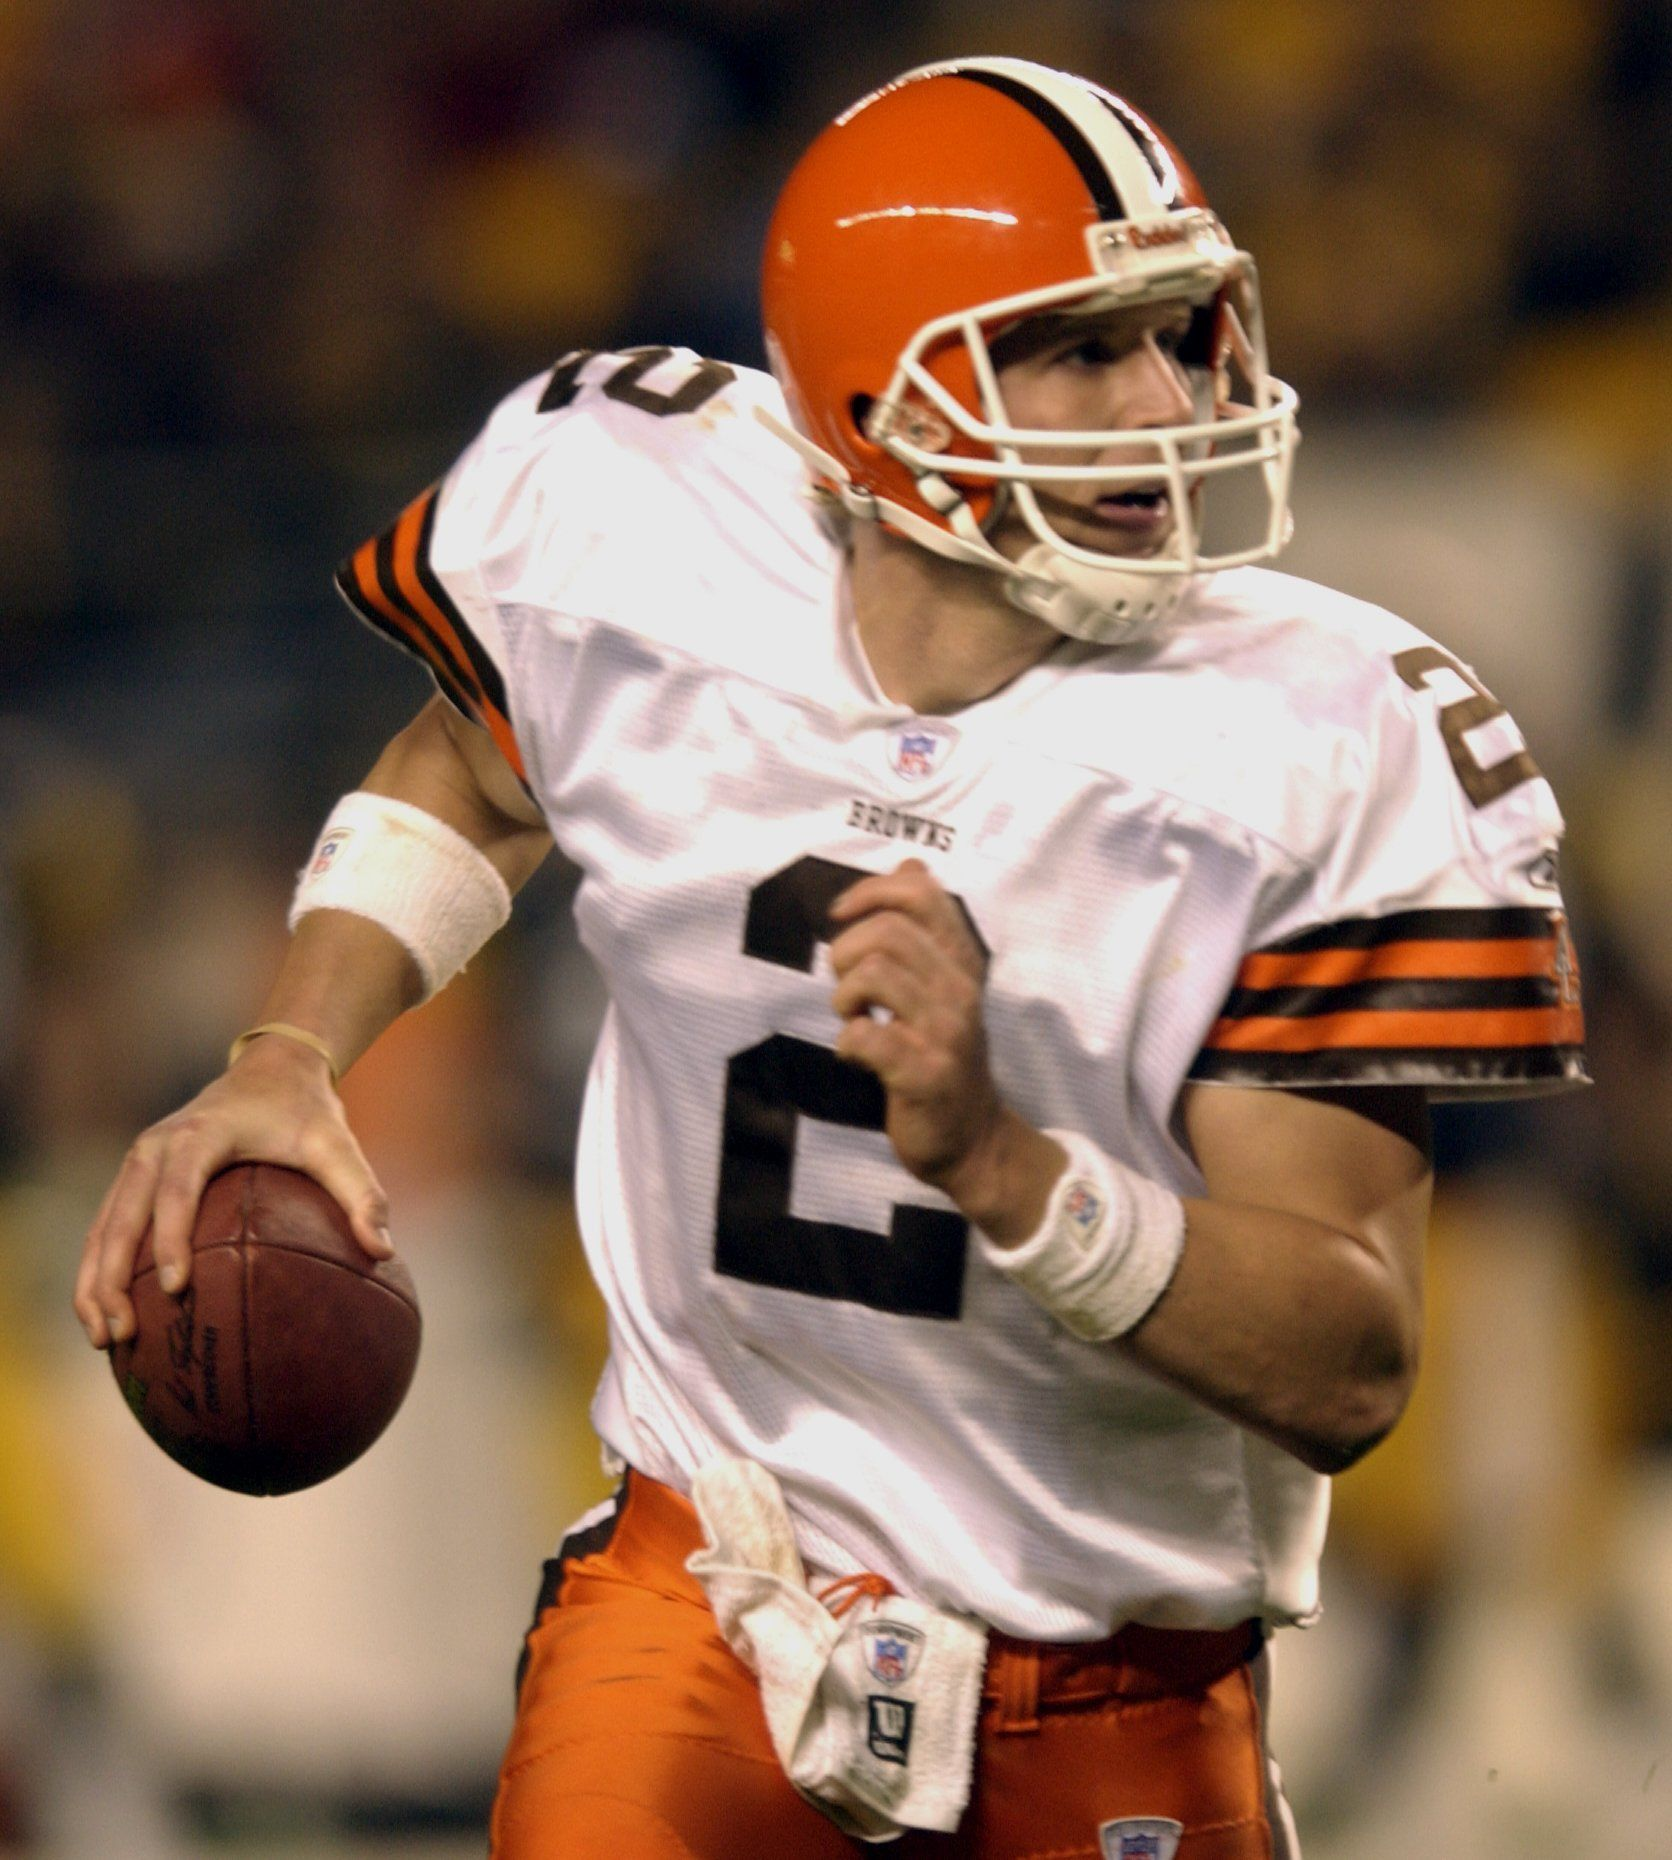 Tim Couch Net Worth